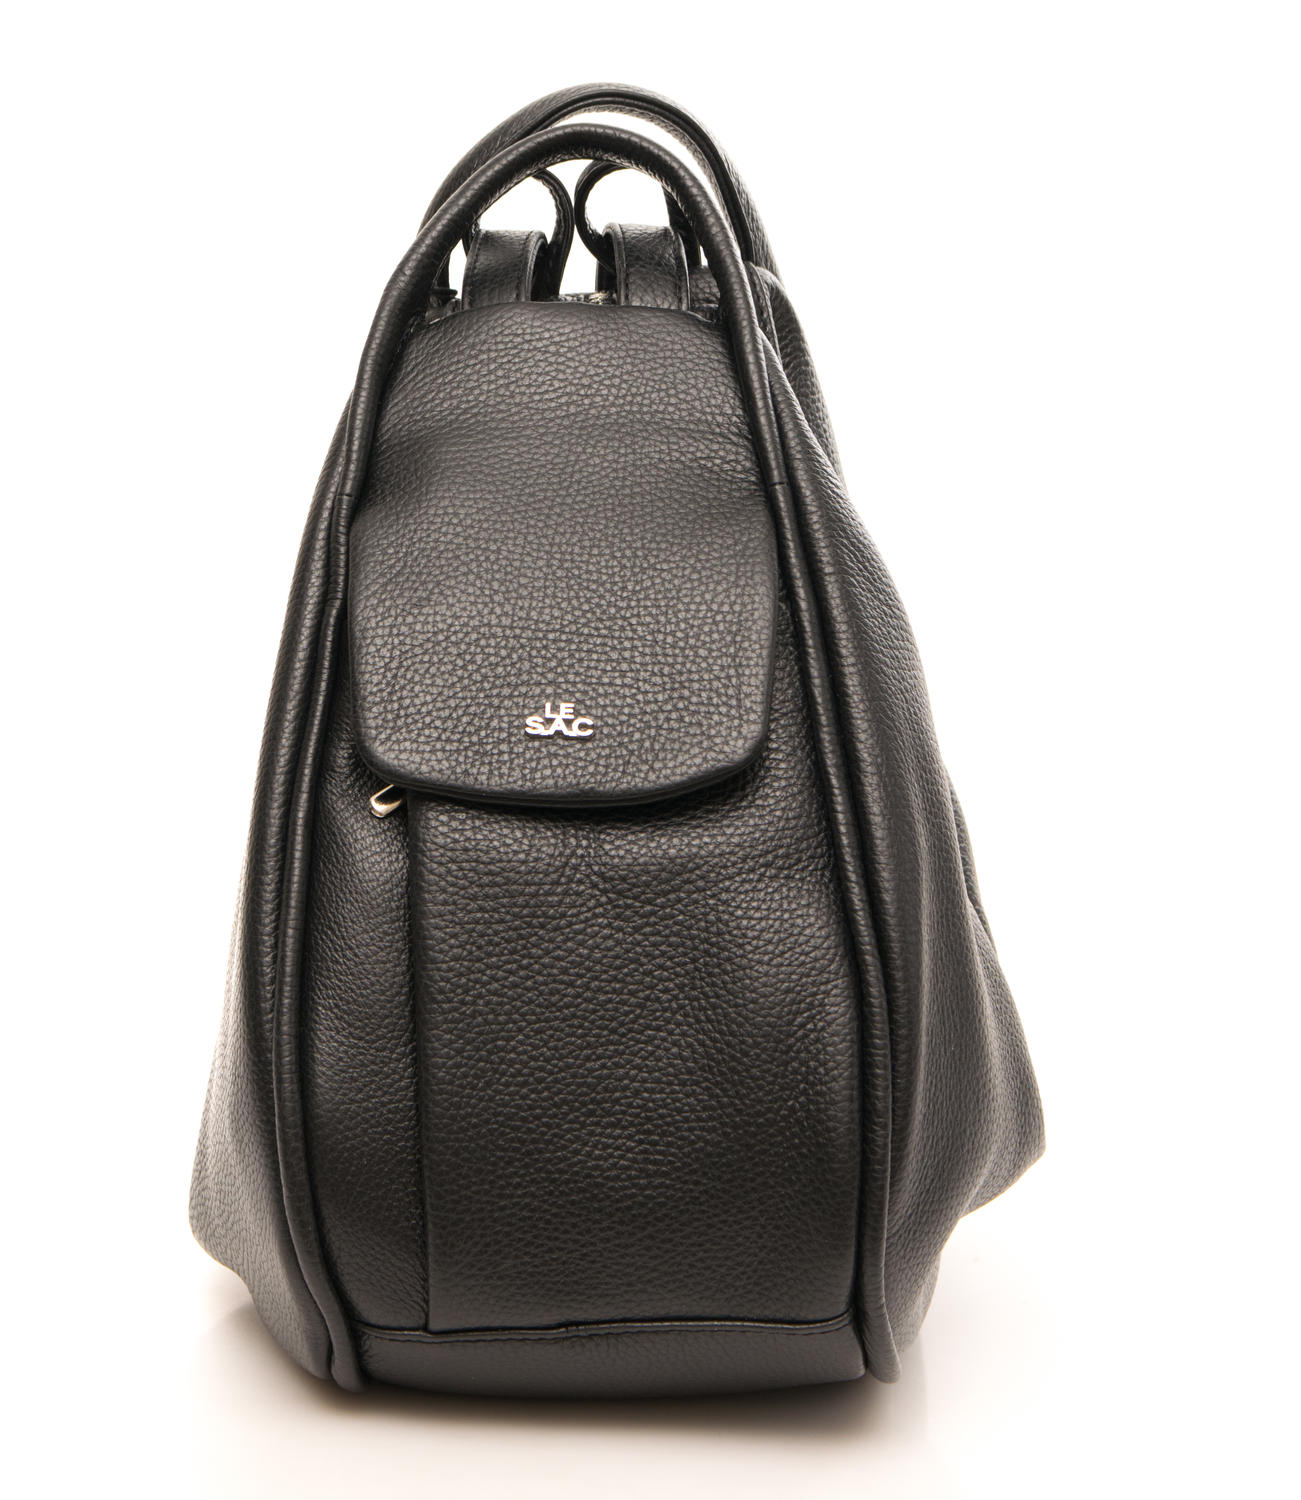 00d5b3e61a7 Shoulder Backpack Handbag – Patmo Technologies Limited